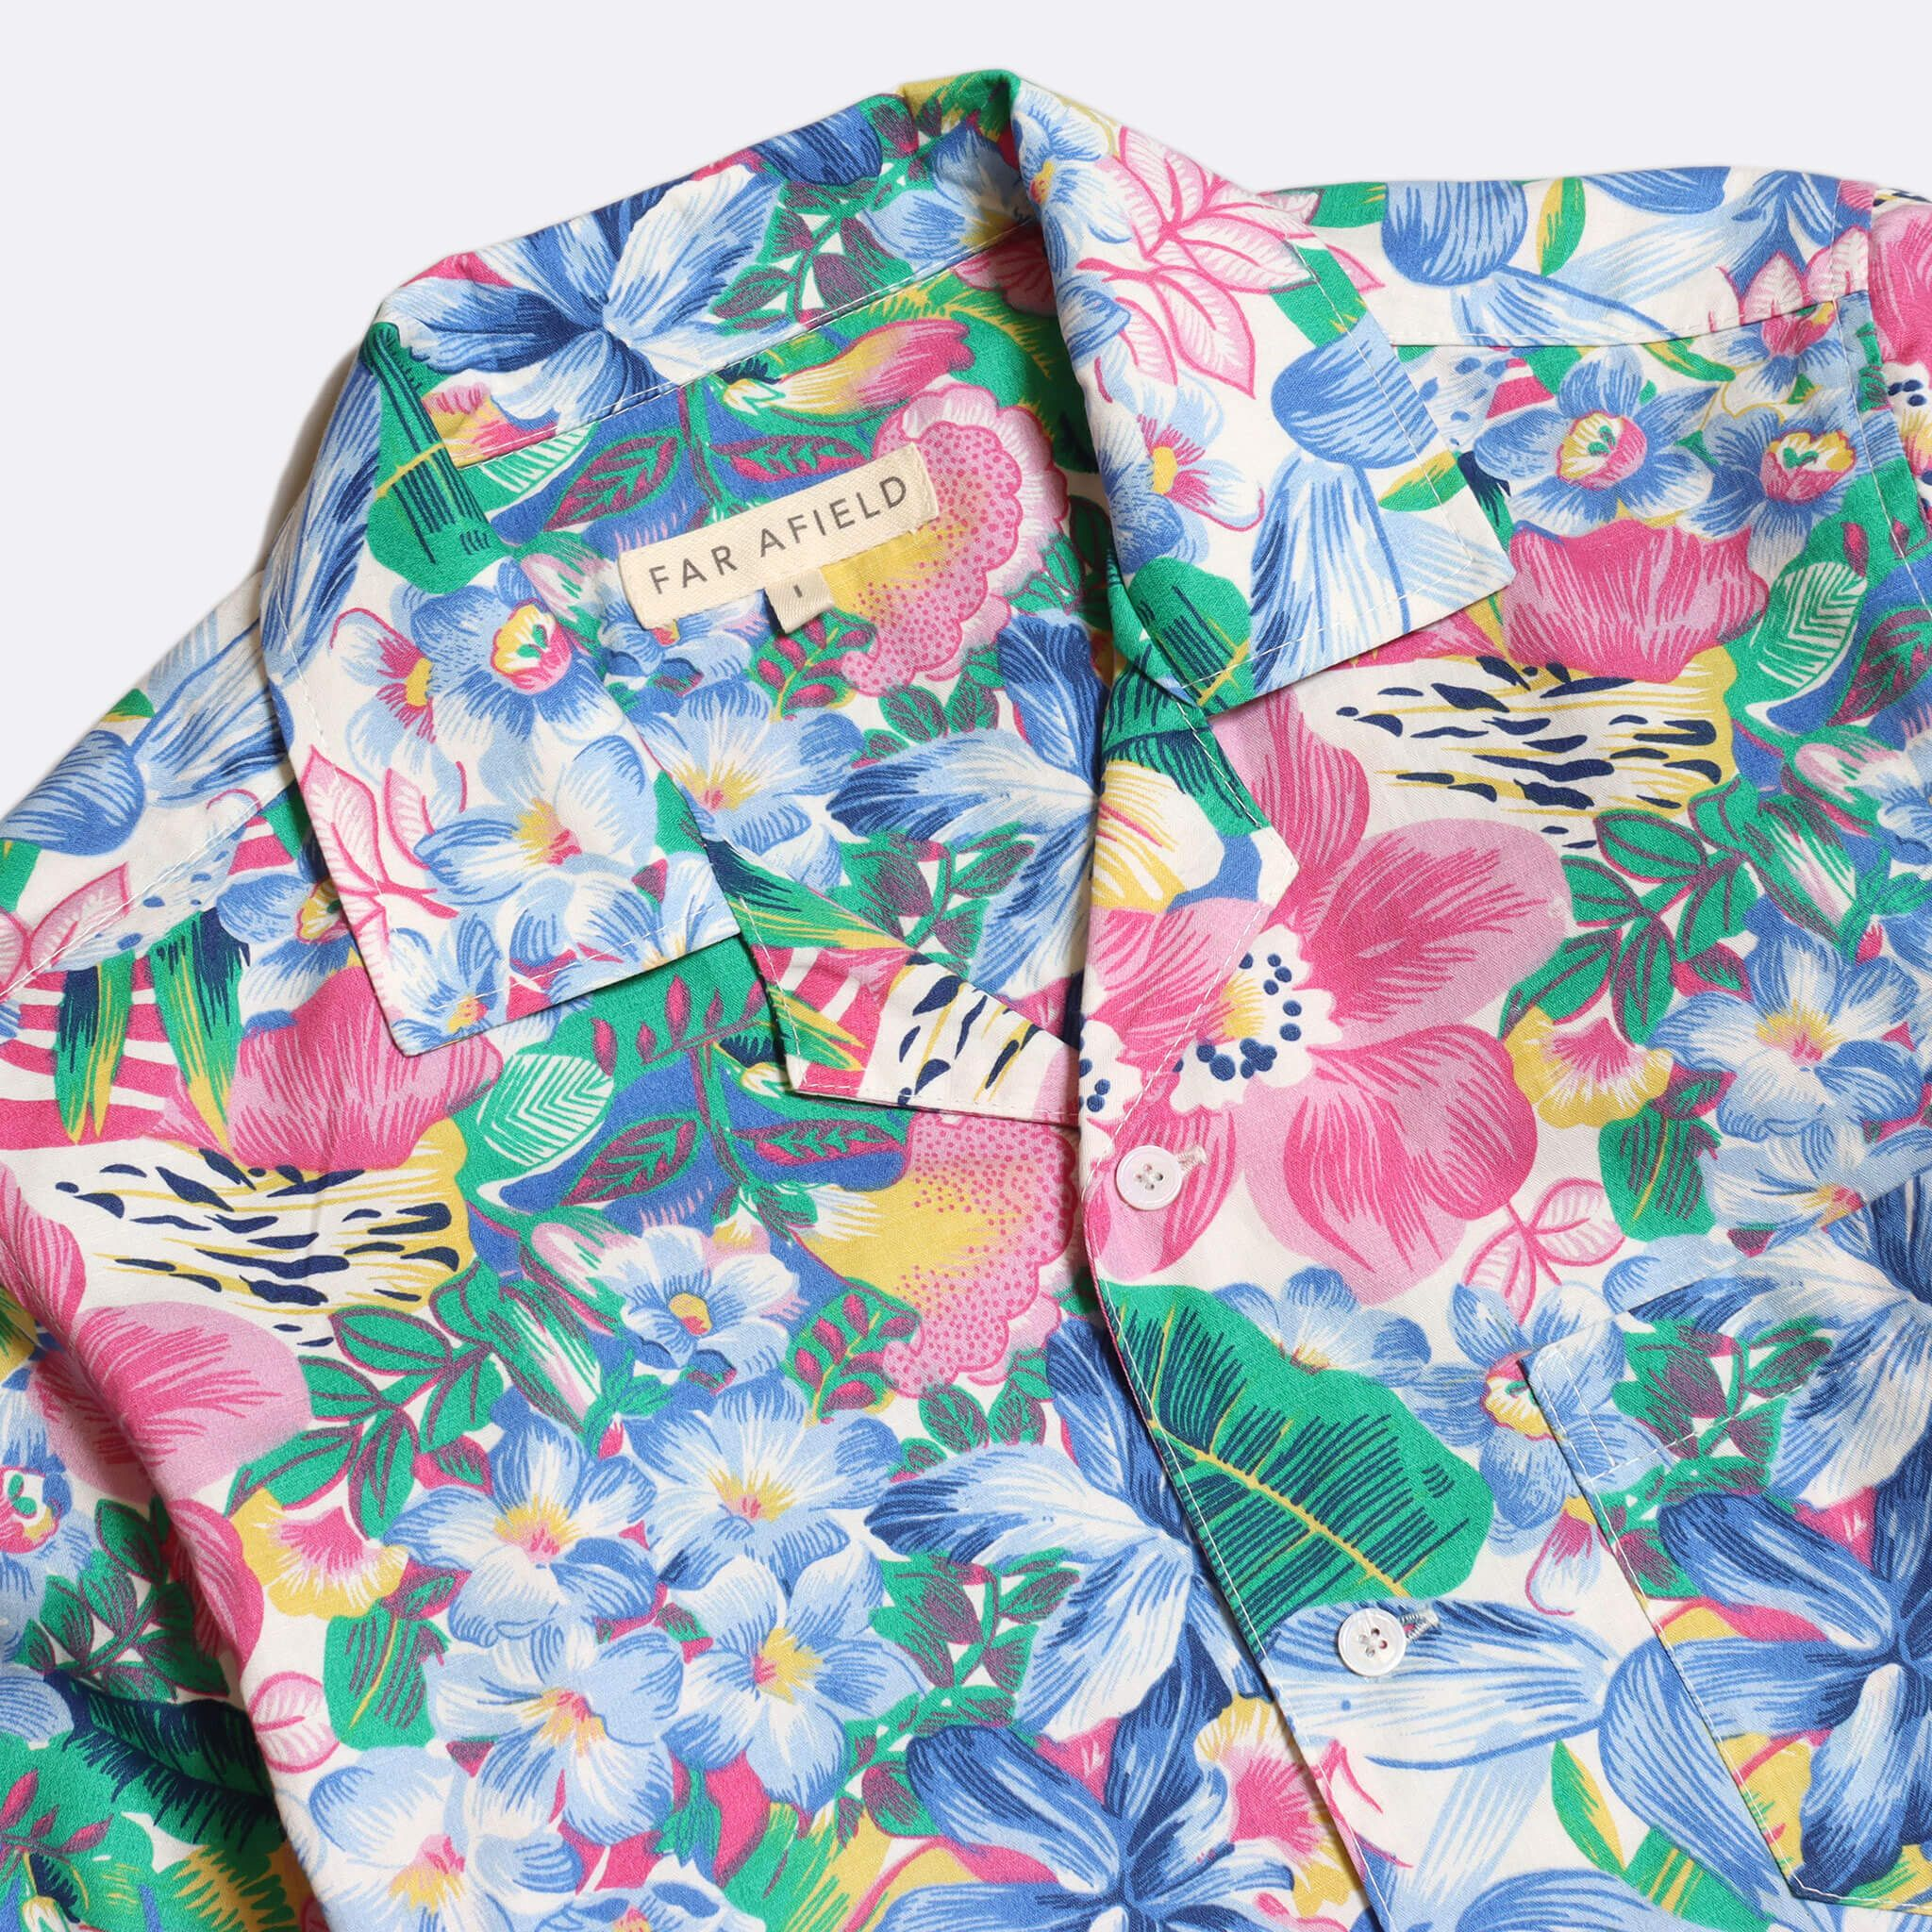 Far Afield Stachio Short Sleeve Shirt a Multi Colour Cotton/Up-Cycled Fabric Hawaiian Bowling Style Smart Casual 2